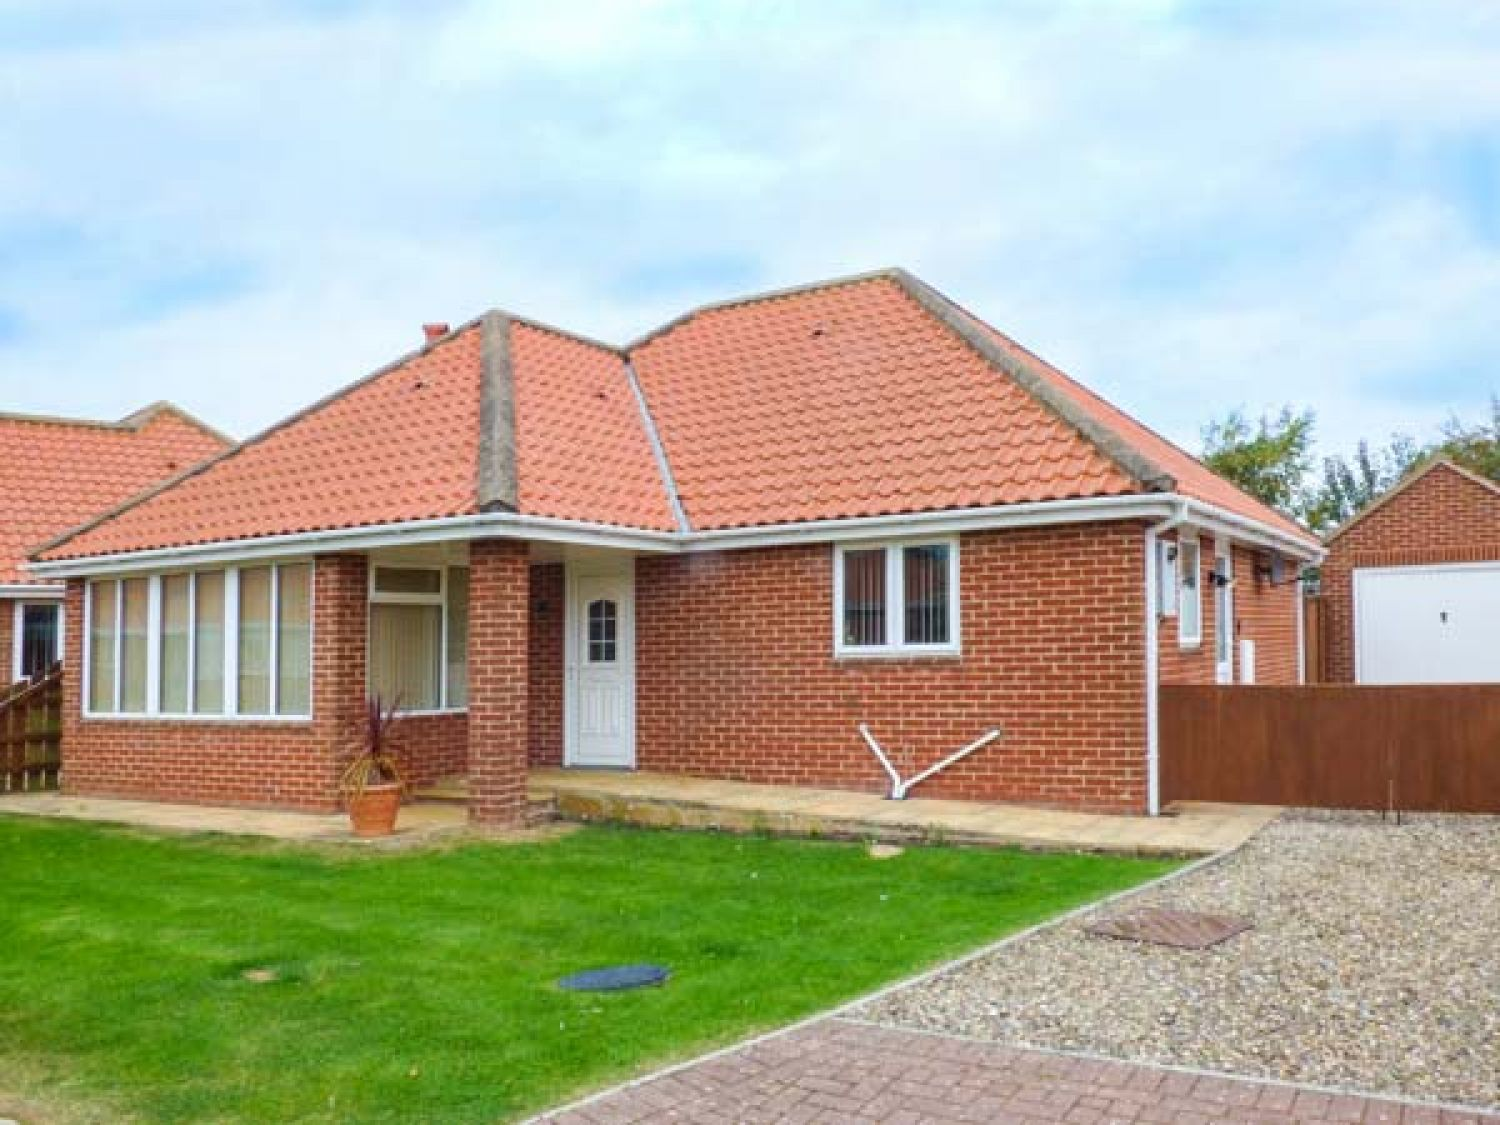 3 Gap Crescent - Whitby & North Yorkshire - 944519 - photo 1